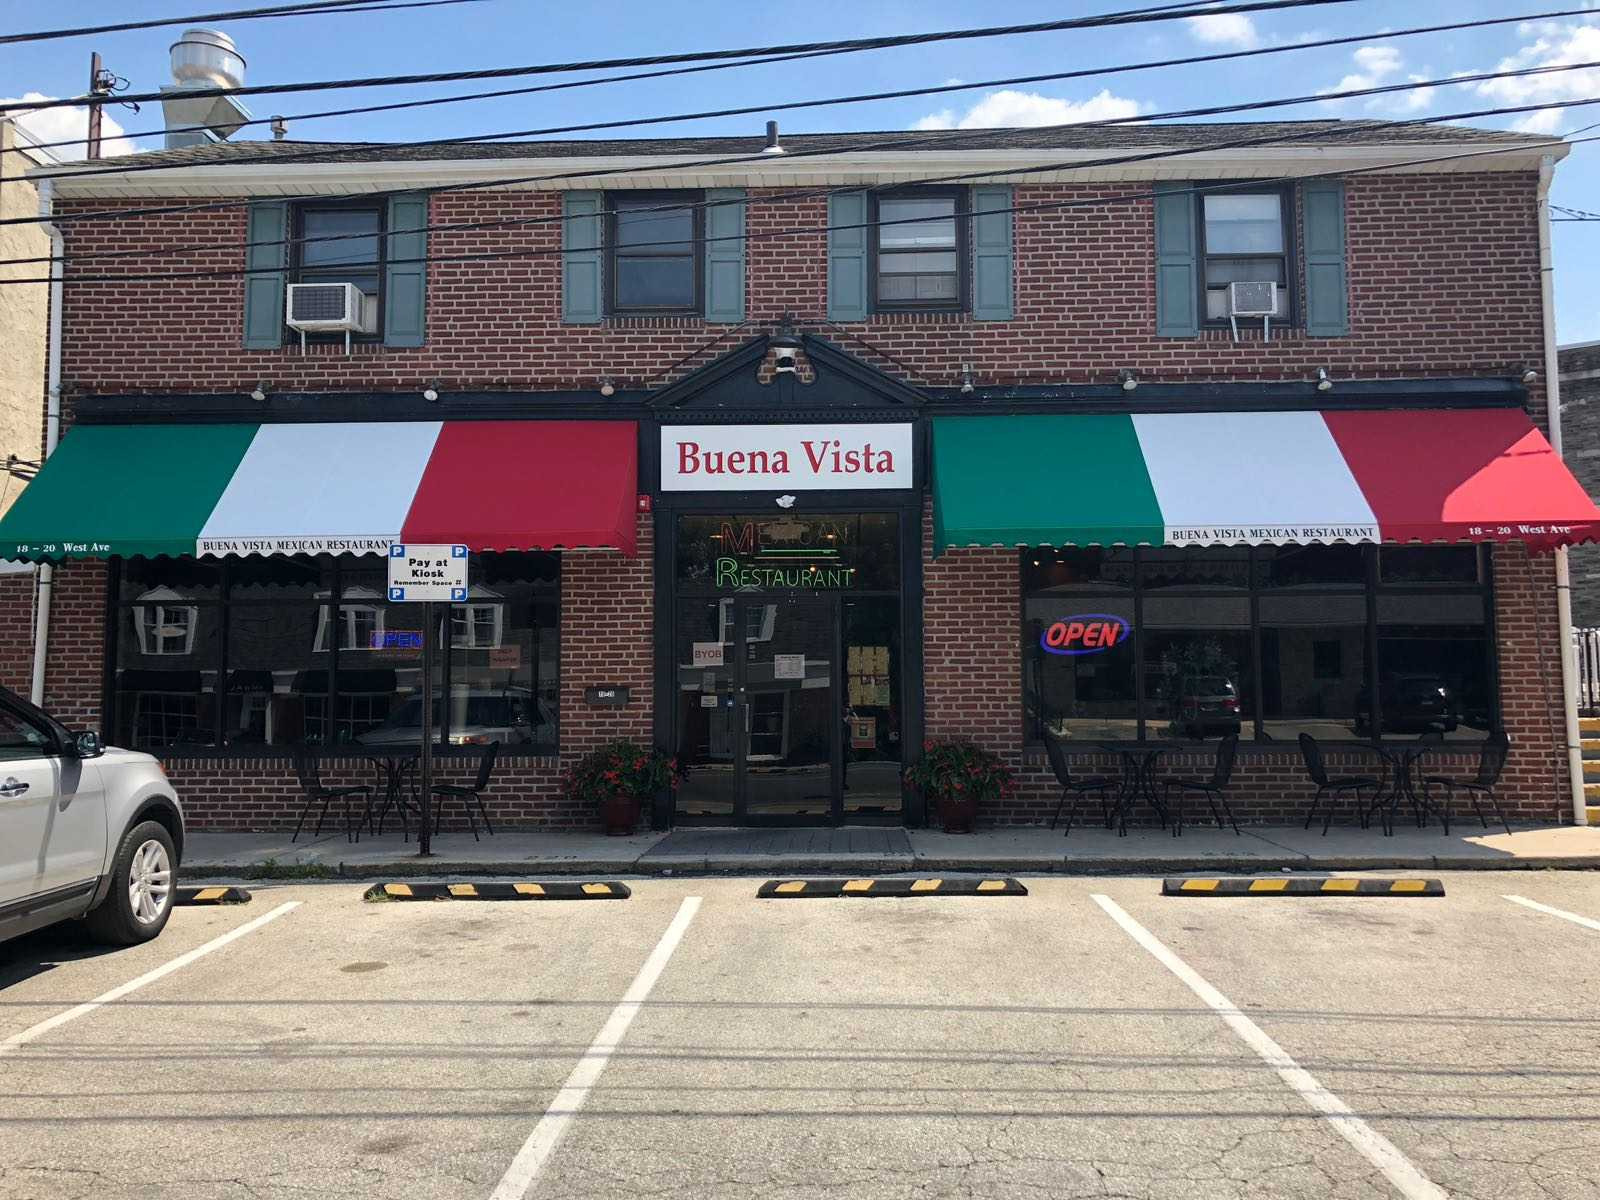 Buena Vista Mexican Restaurant in Wayne, PA